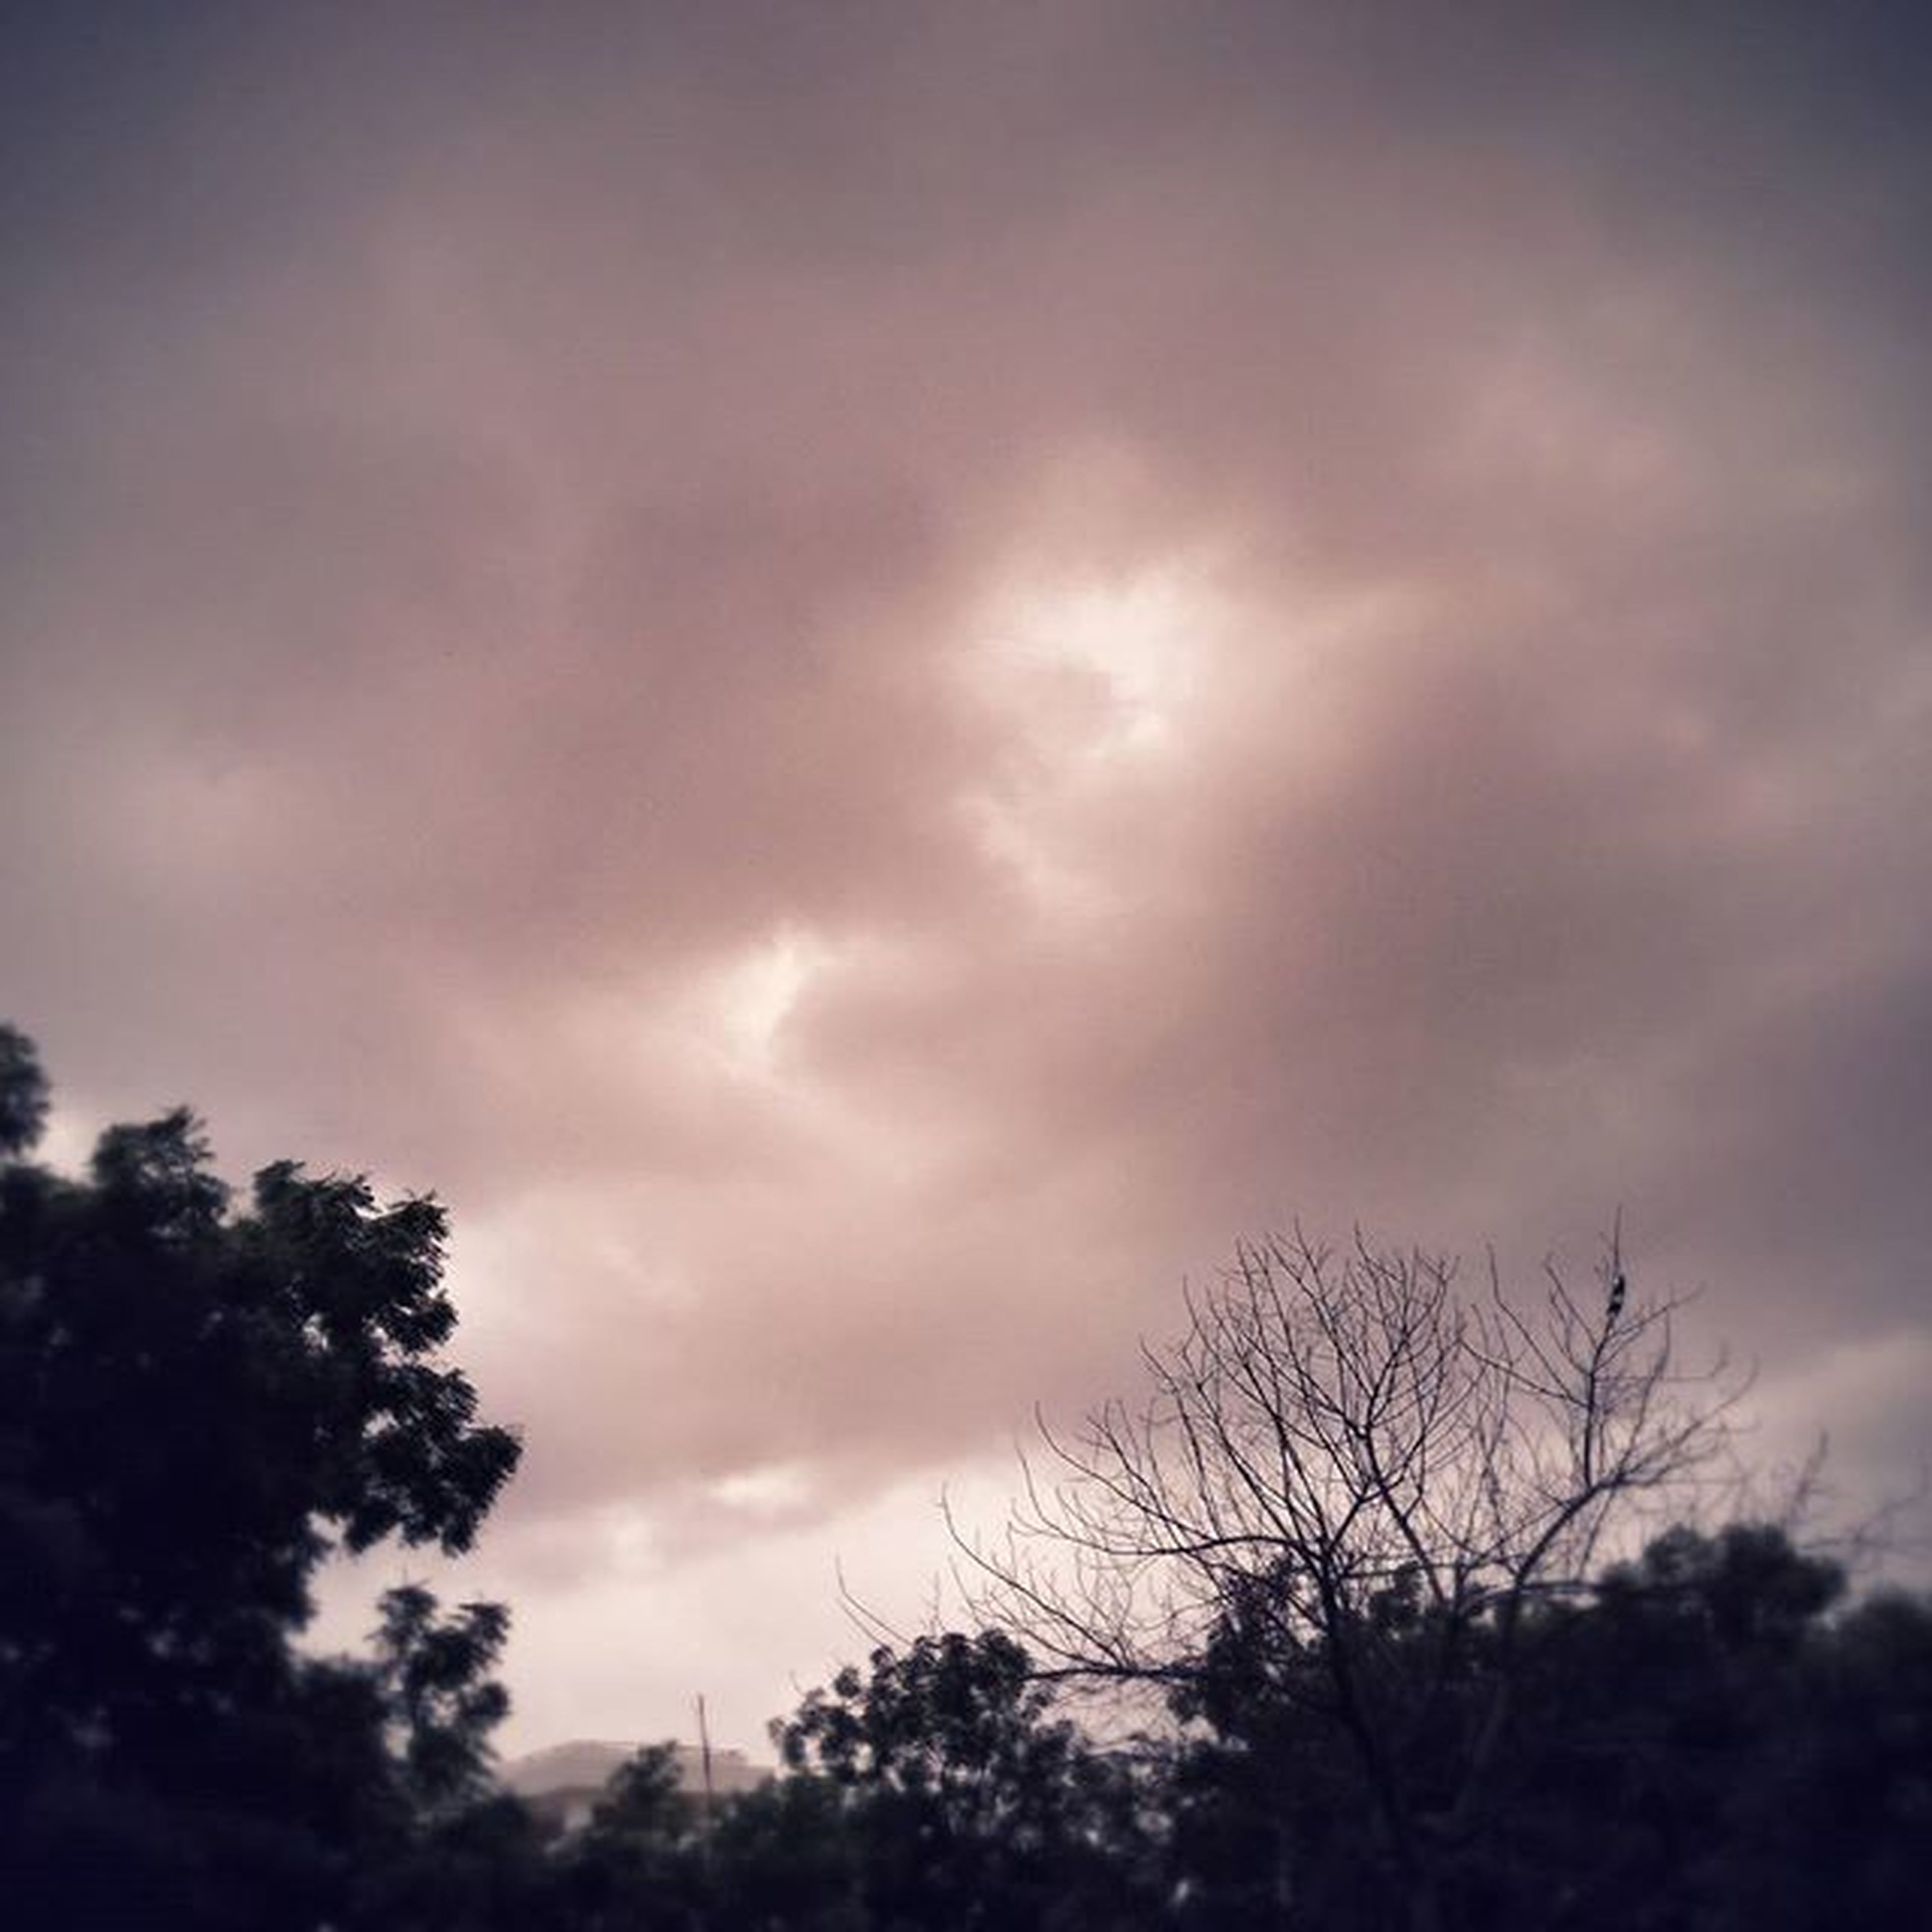 sky, tree, cloud - sky, low angle view, cloudy, silhouette, tranquility, weather, overcast, beauty in nature, nature, scenics, tranquil scene, cloud, branch, dusk, growth, storm cloud, outdoors, no people